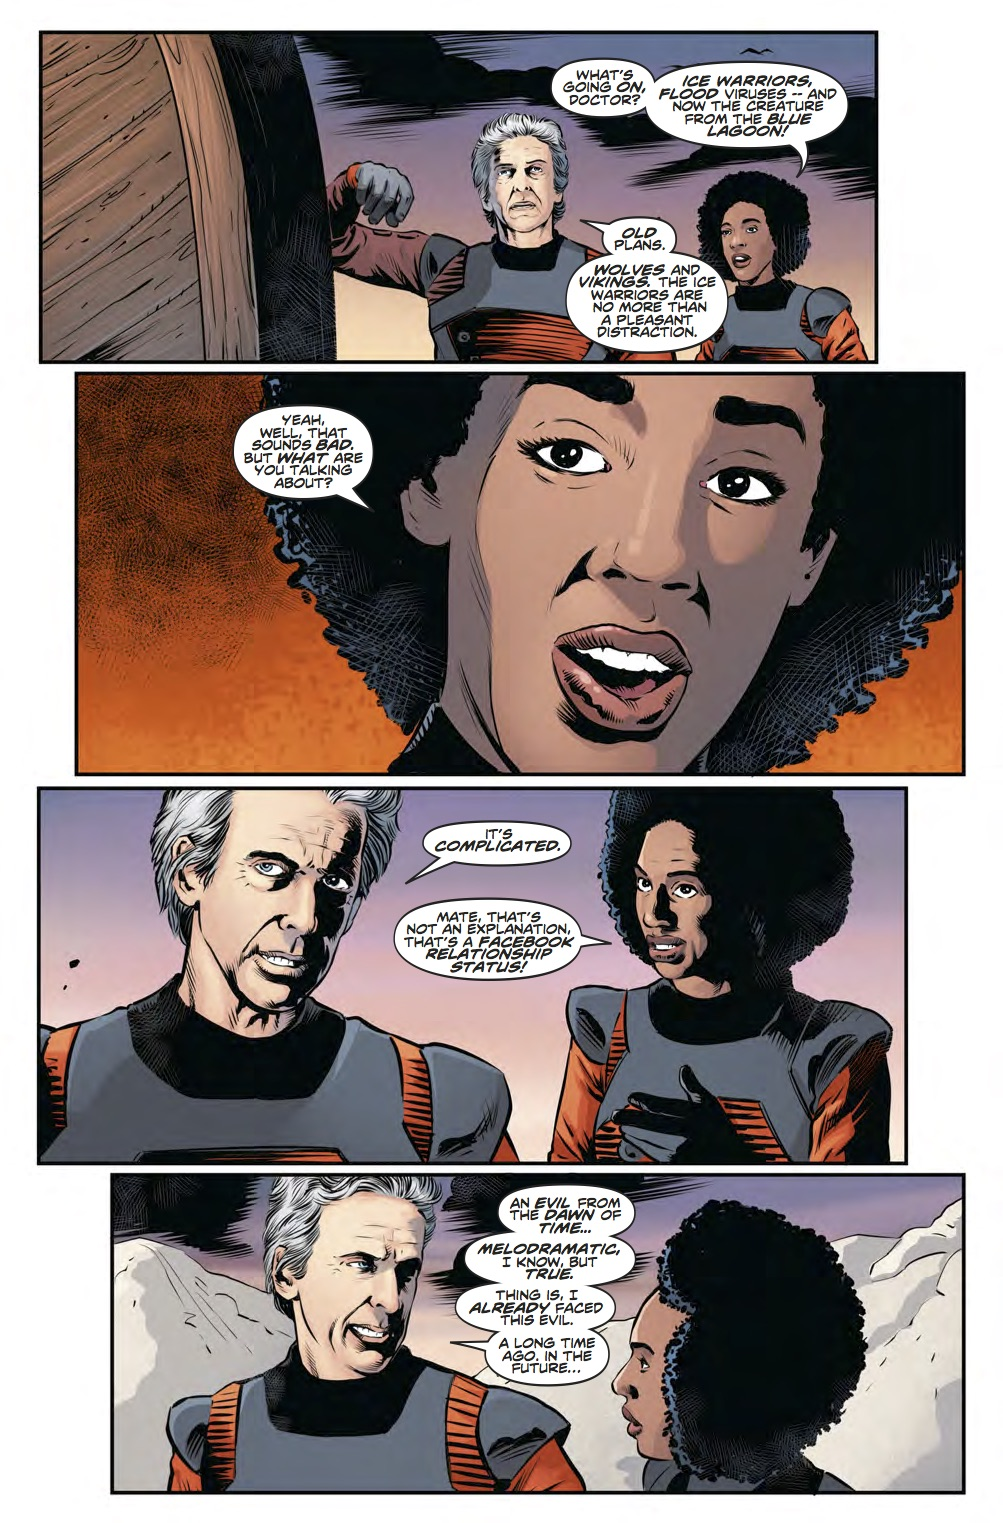 Twelfth Doctor Year Three #8 - Page 4 (Credit: Titan )